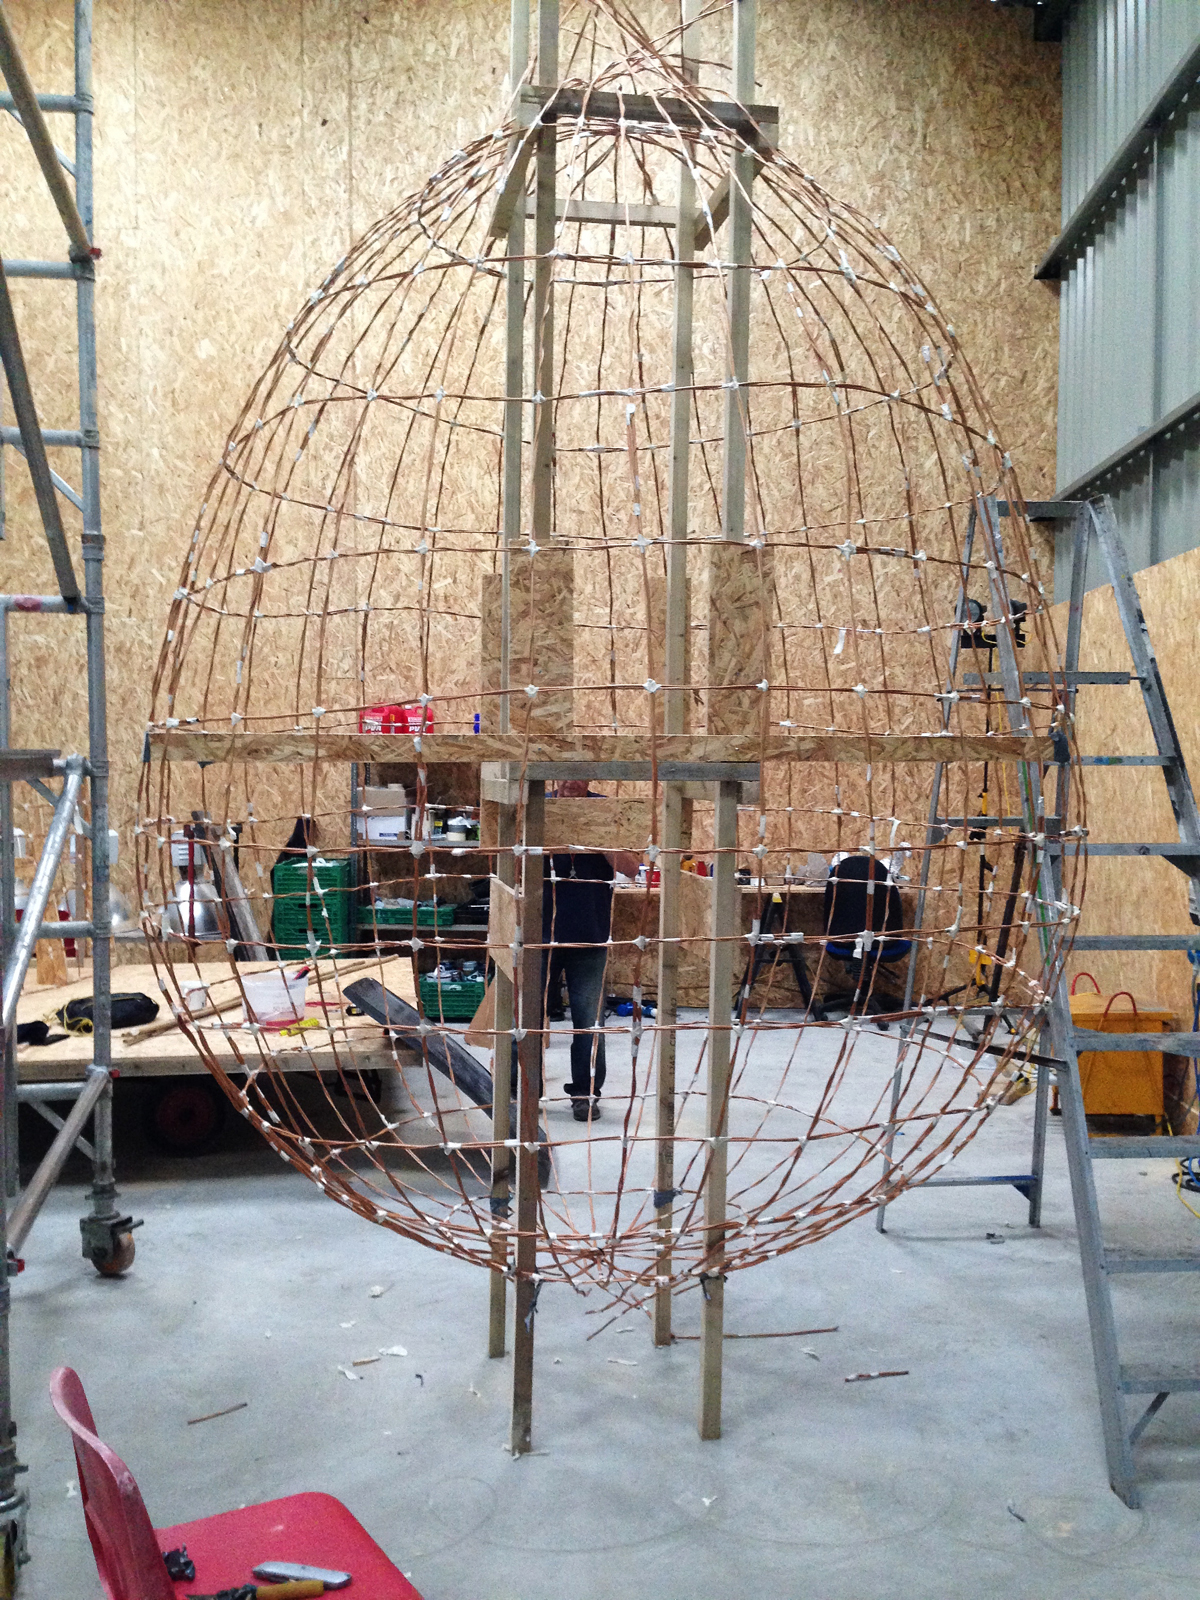 Skeleton of the egg built in willow.